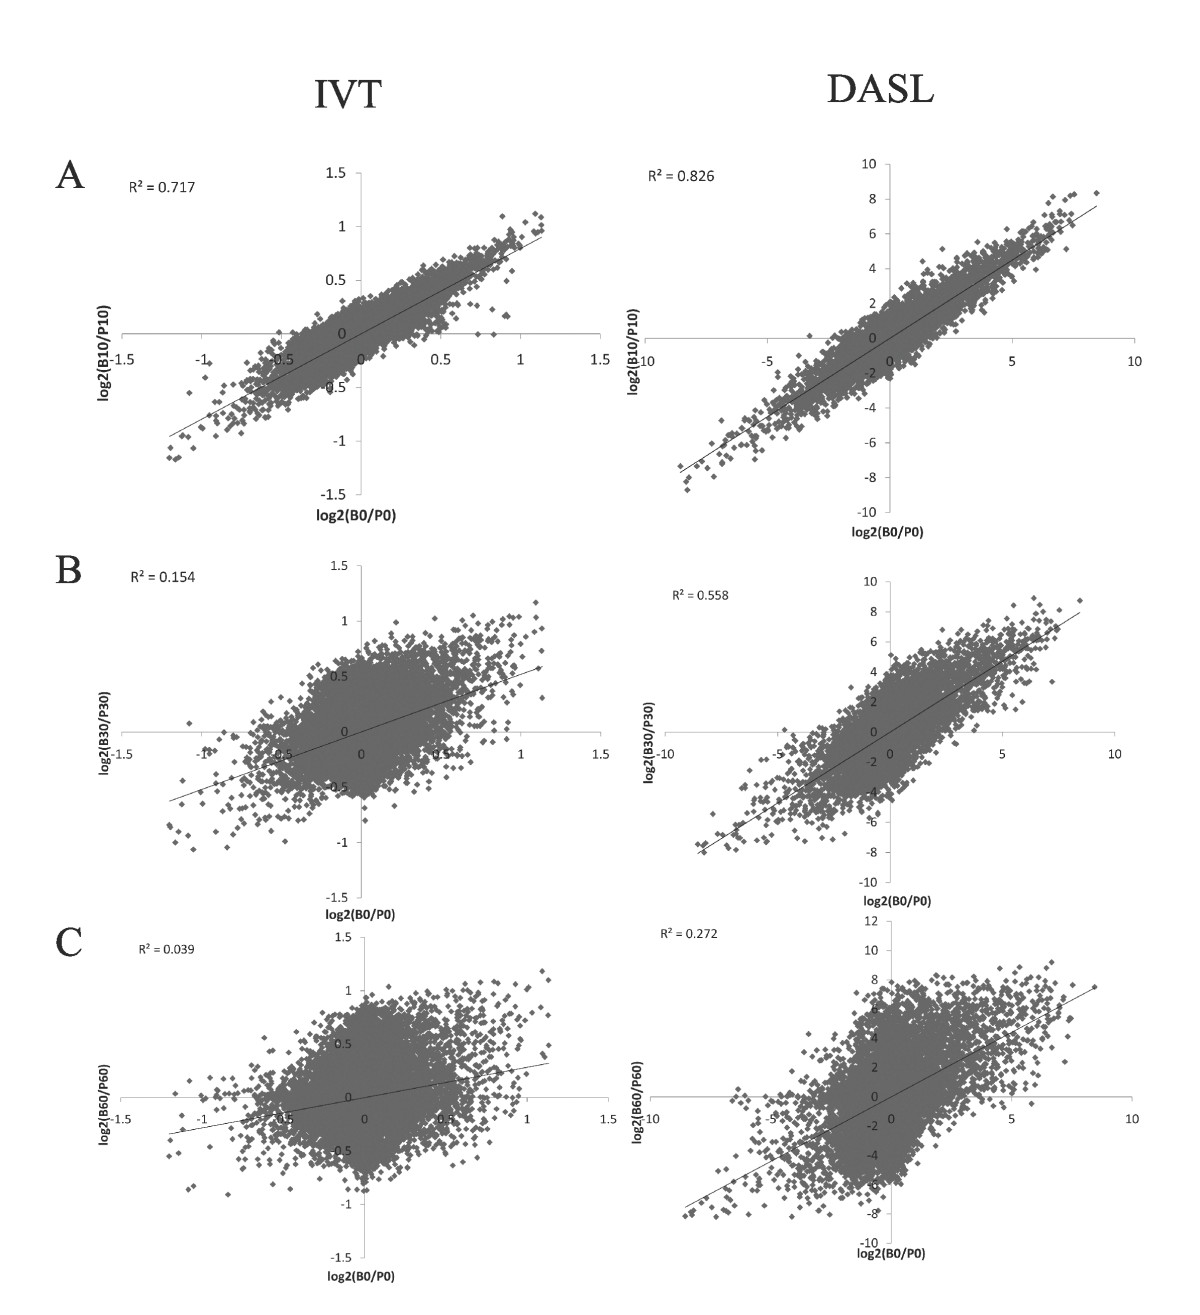 http://static-content.springer.com/image/art%3A10.1186%2F1471-2164-12-449/MediaObjects/12864_2011_3593_Fig1_HTML.jpg